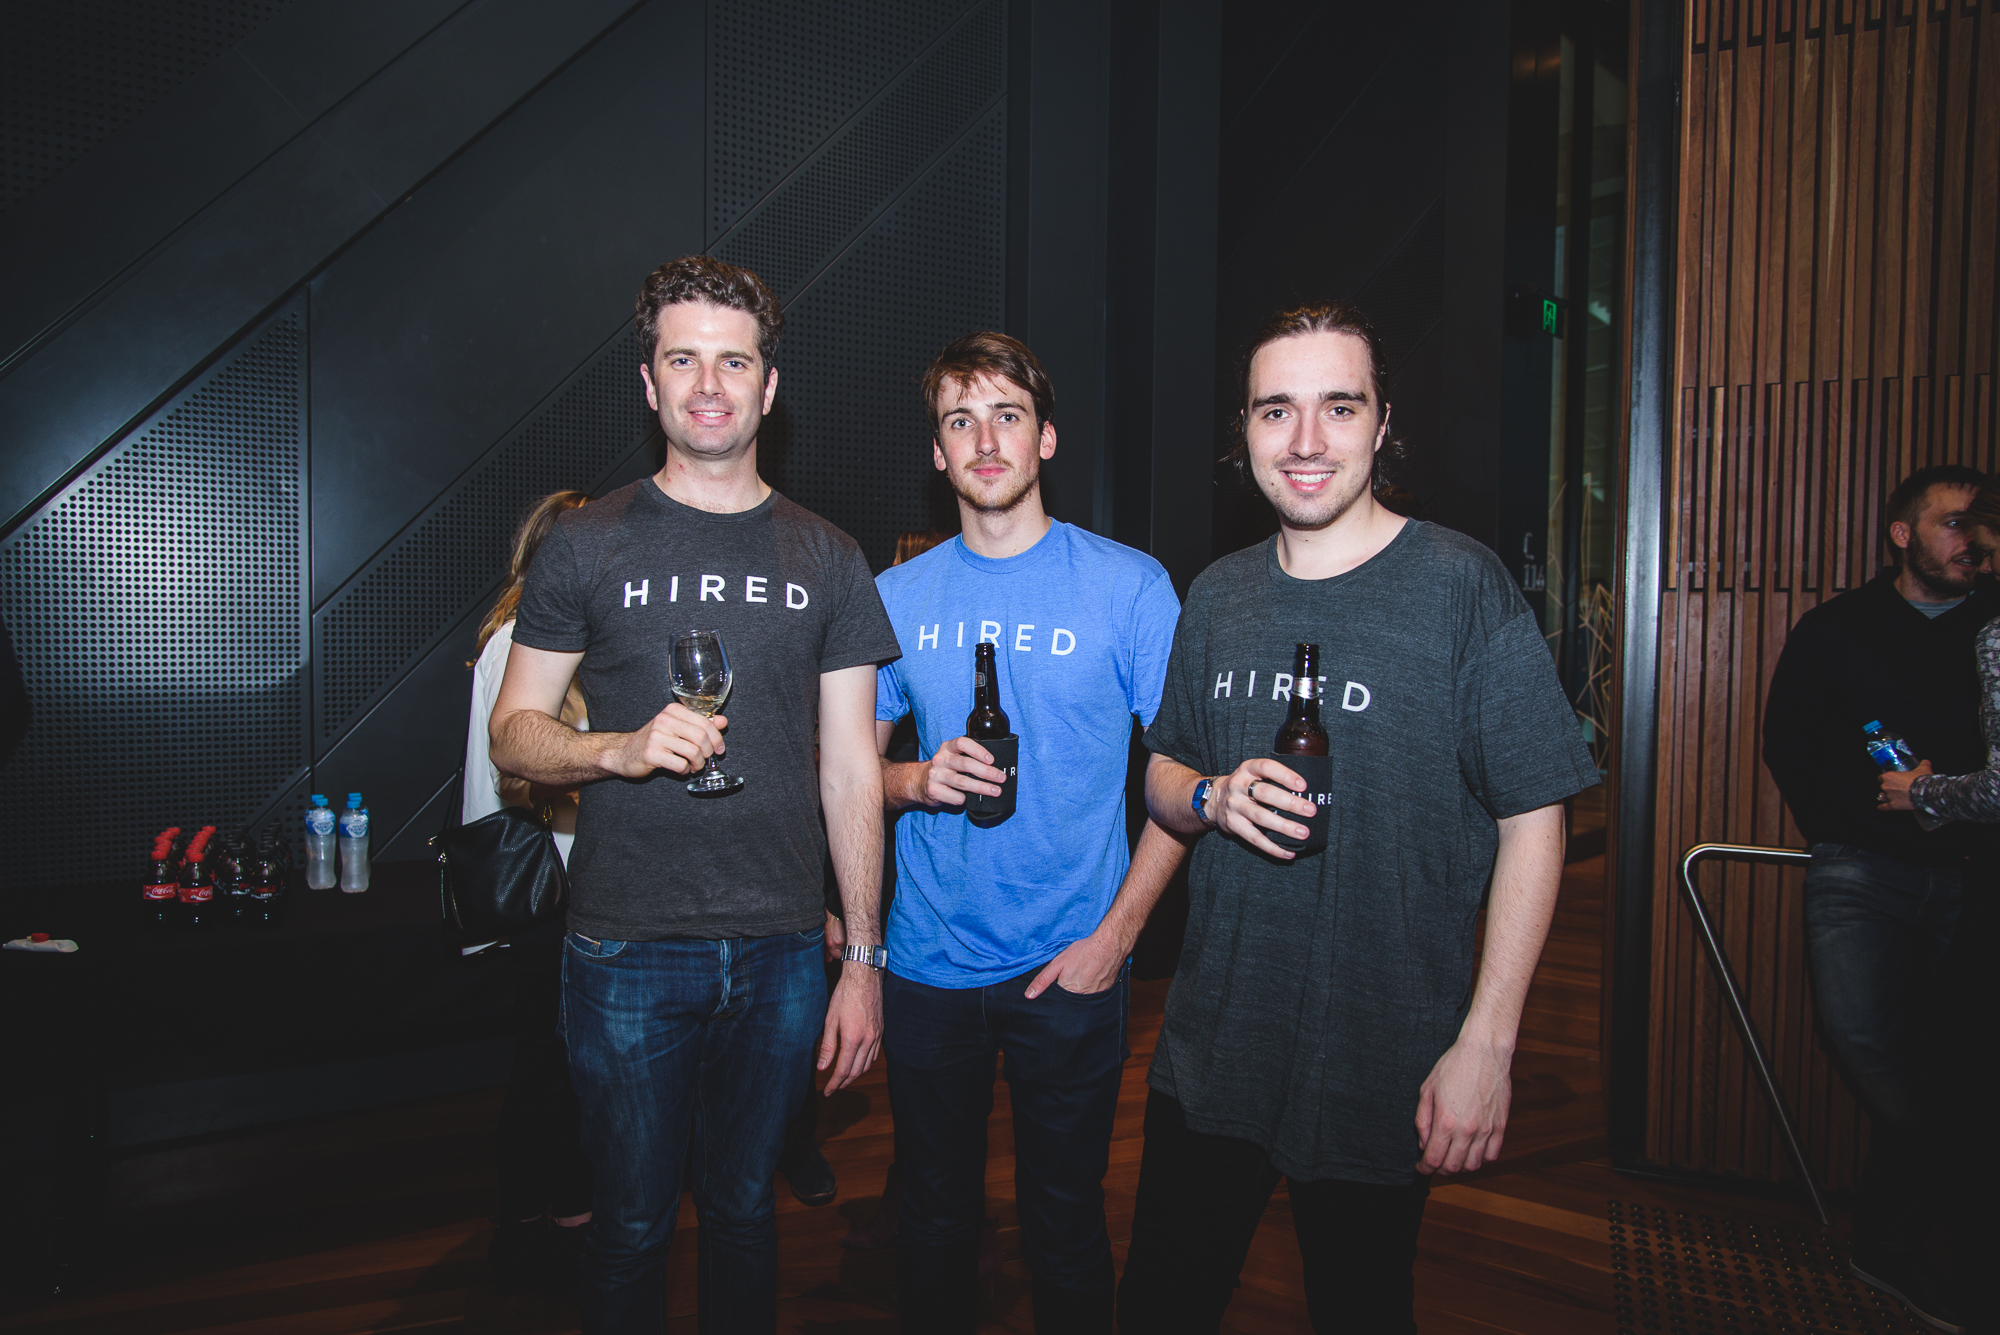 The Hired team in Melbourne  (Image: Startup Melbourne)